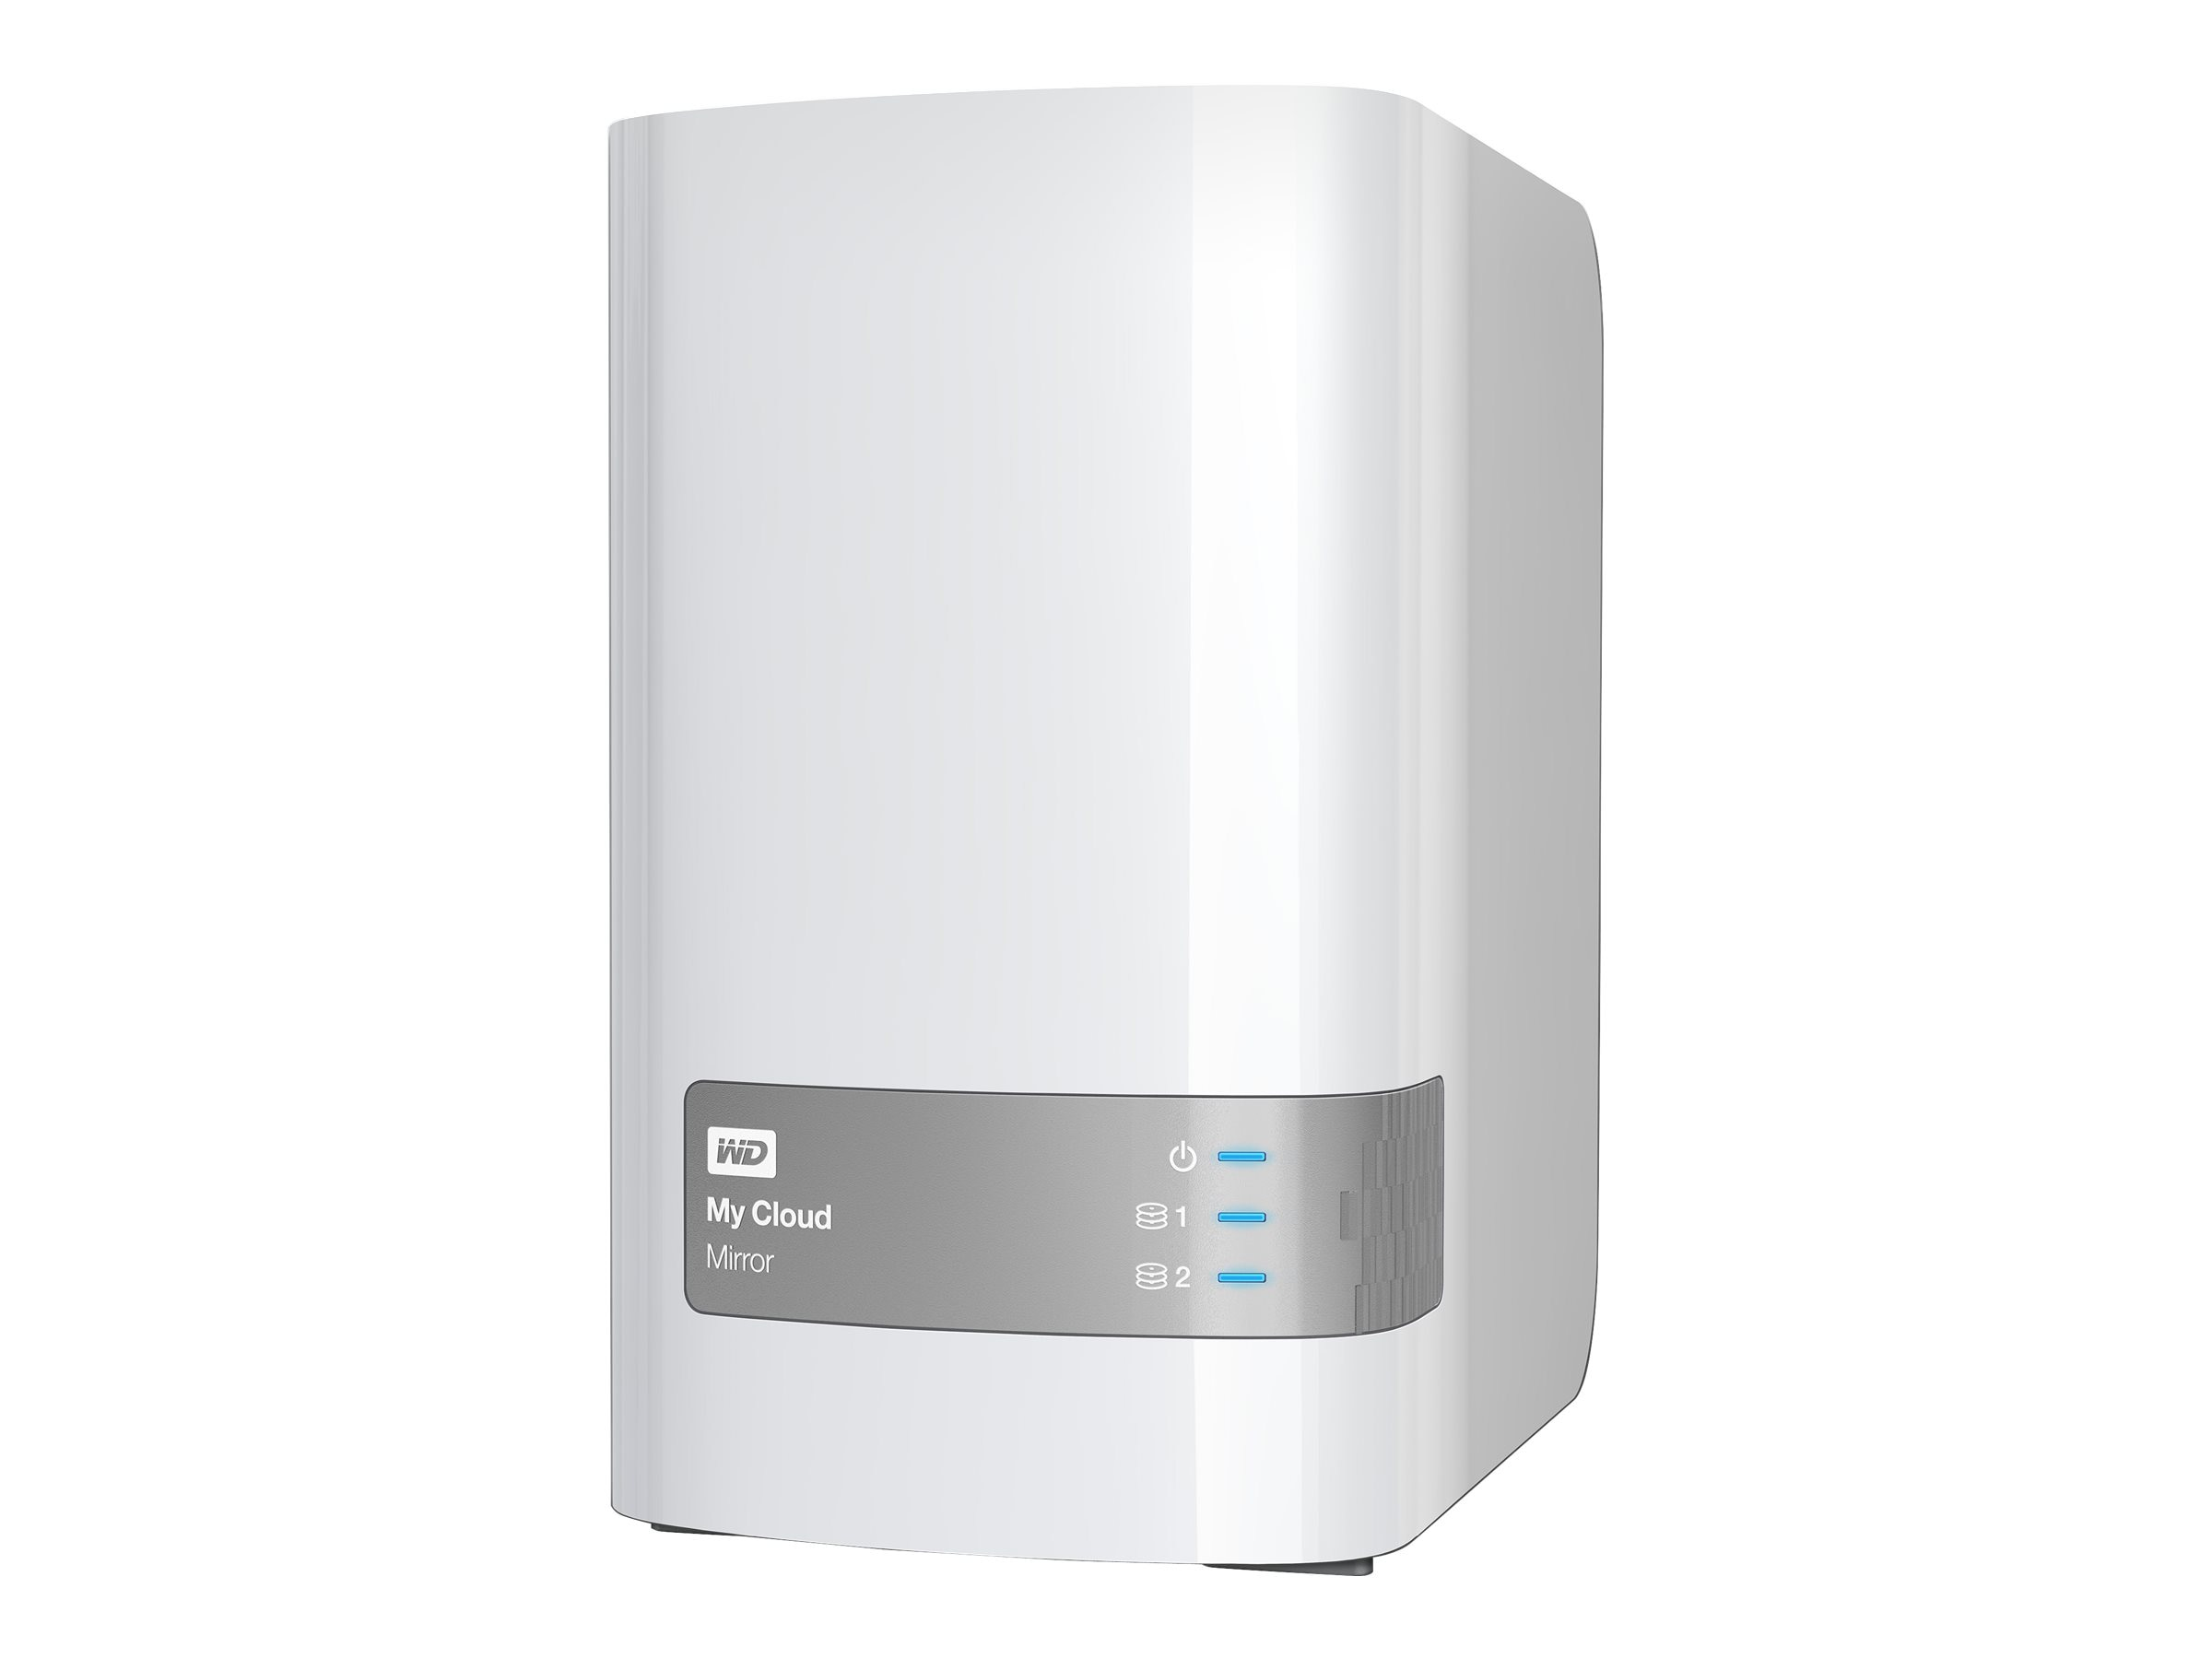 WD 10TB My Cloud Mirror Personal Cloud Storage